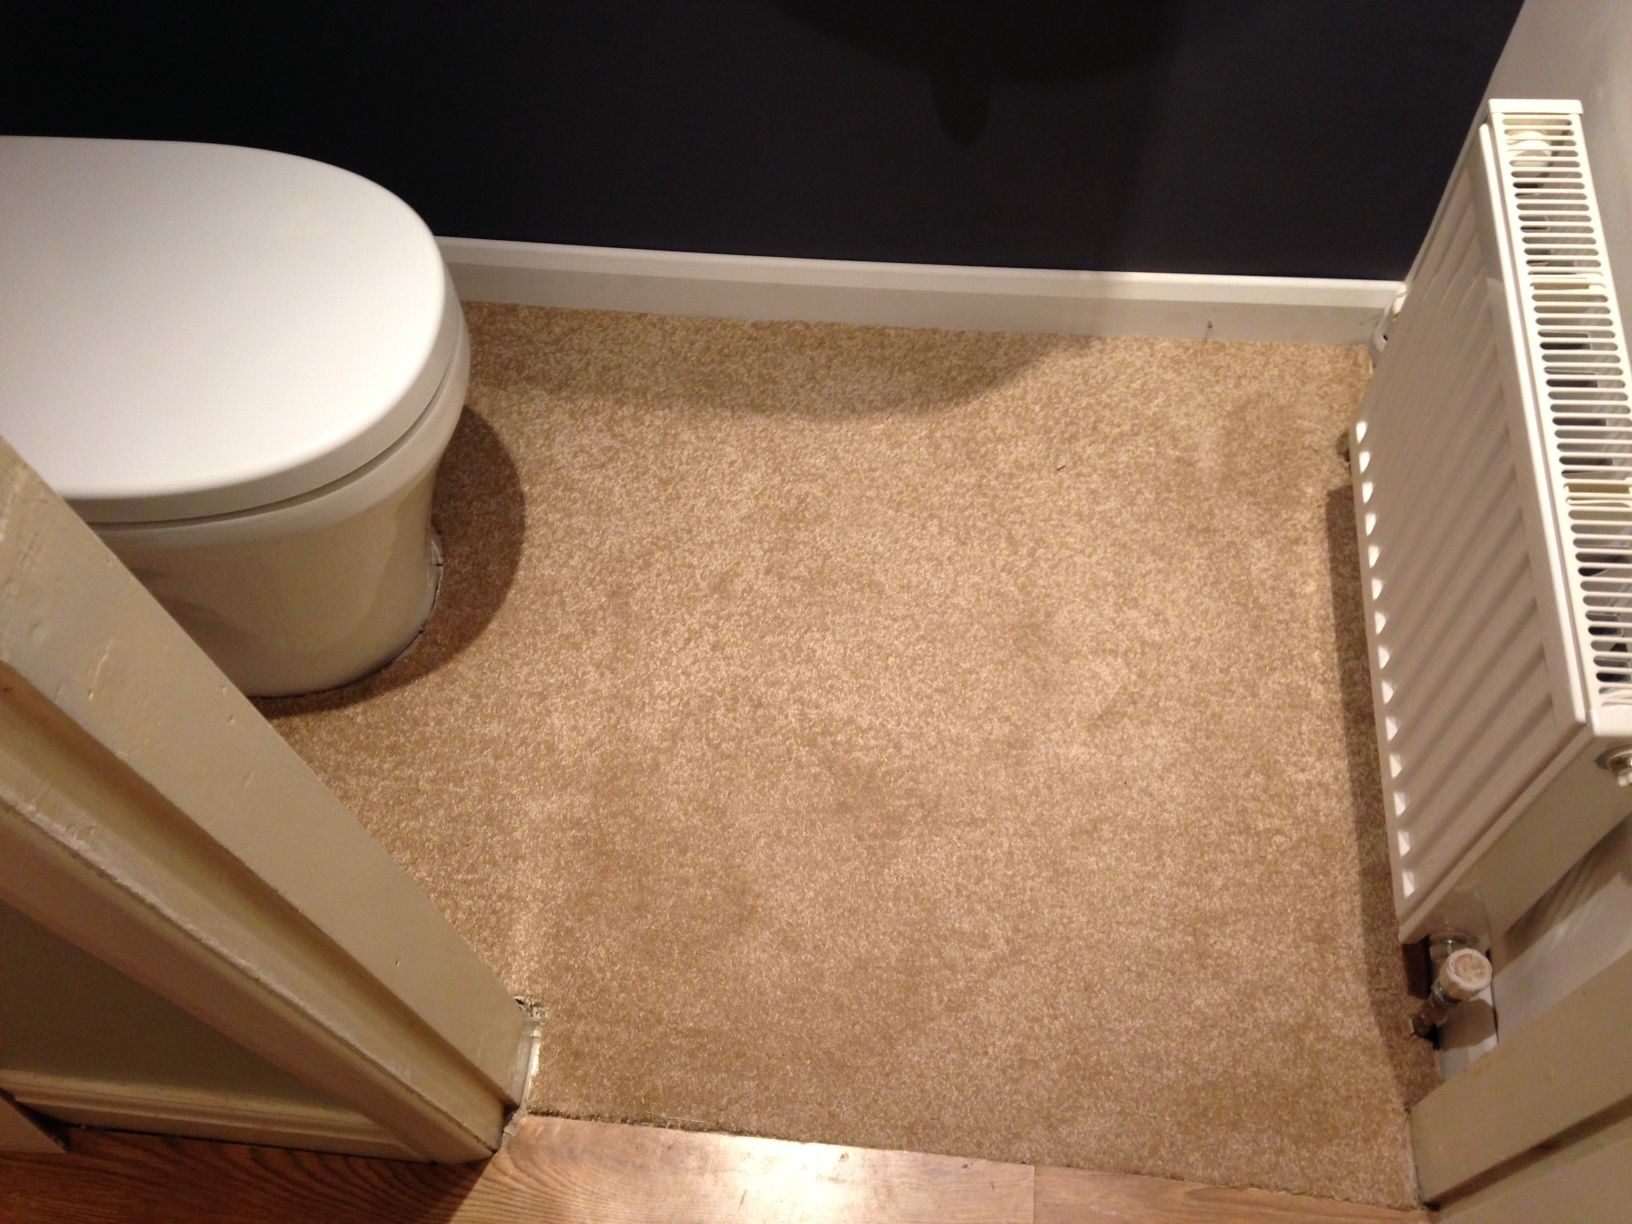 An Off Cut Of Carpet Was Used As A Temporary Floor Covering Until The Hallway